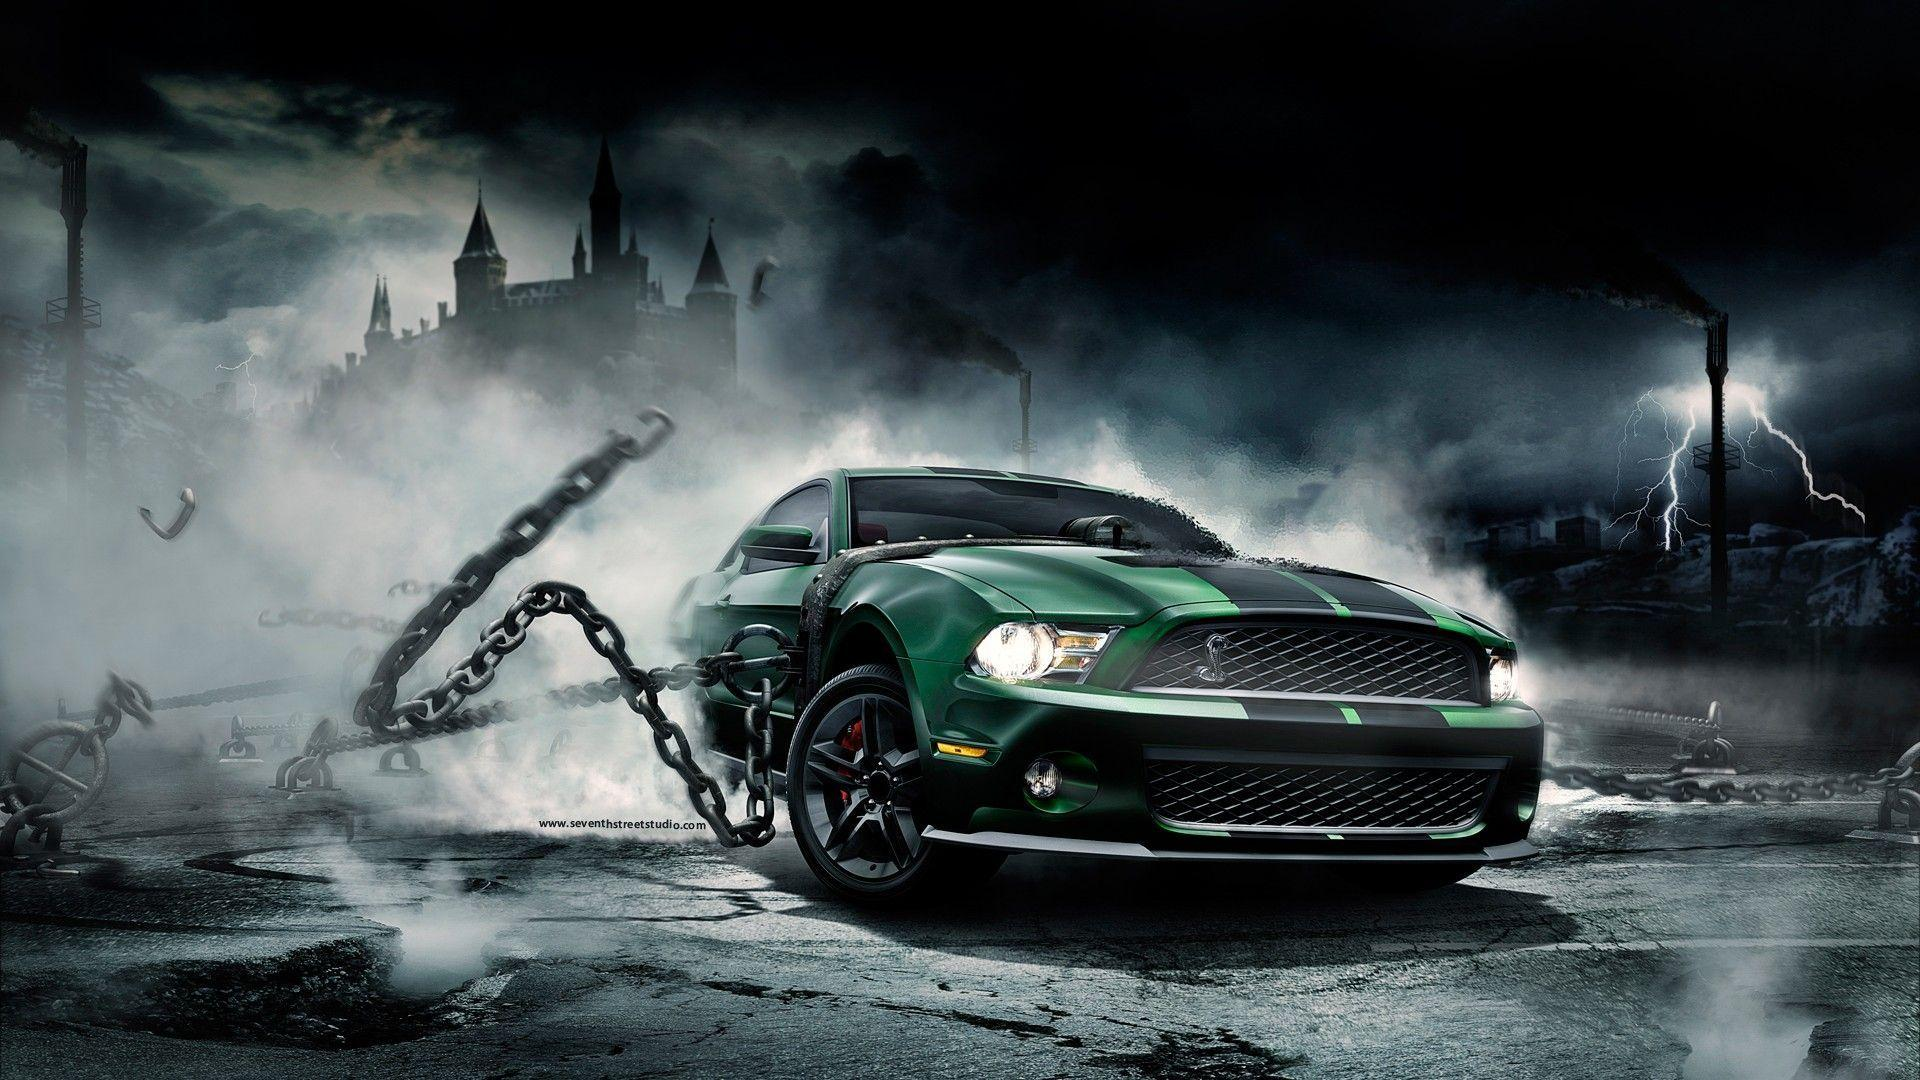 40 High-Quality Ford Mustang Wallpapers | CrispMe